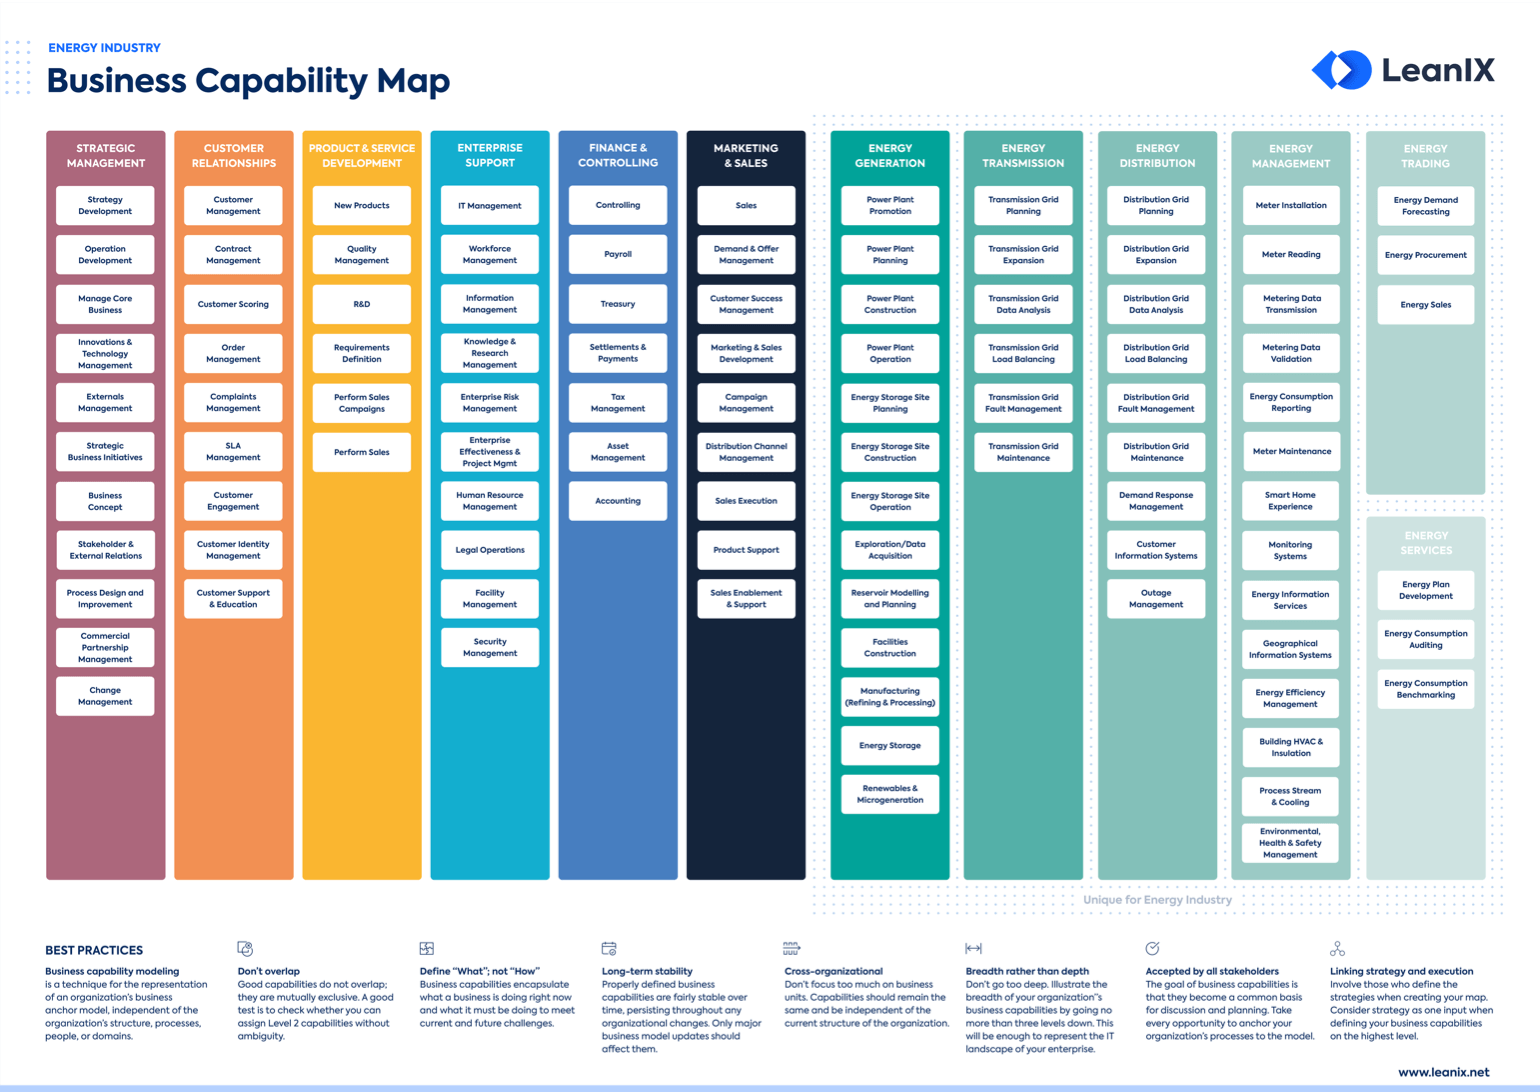 Business Capability Map for the Energy Industry